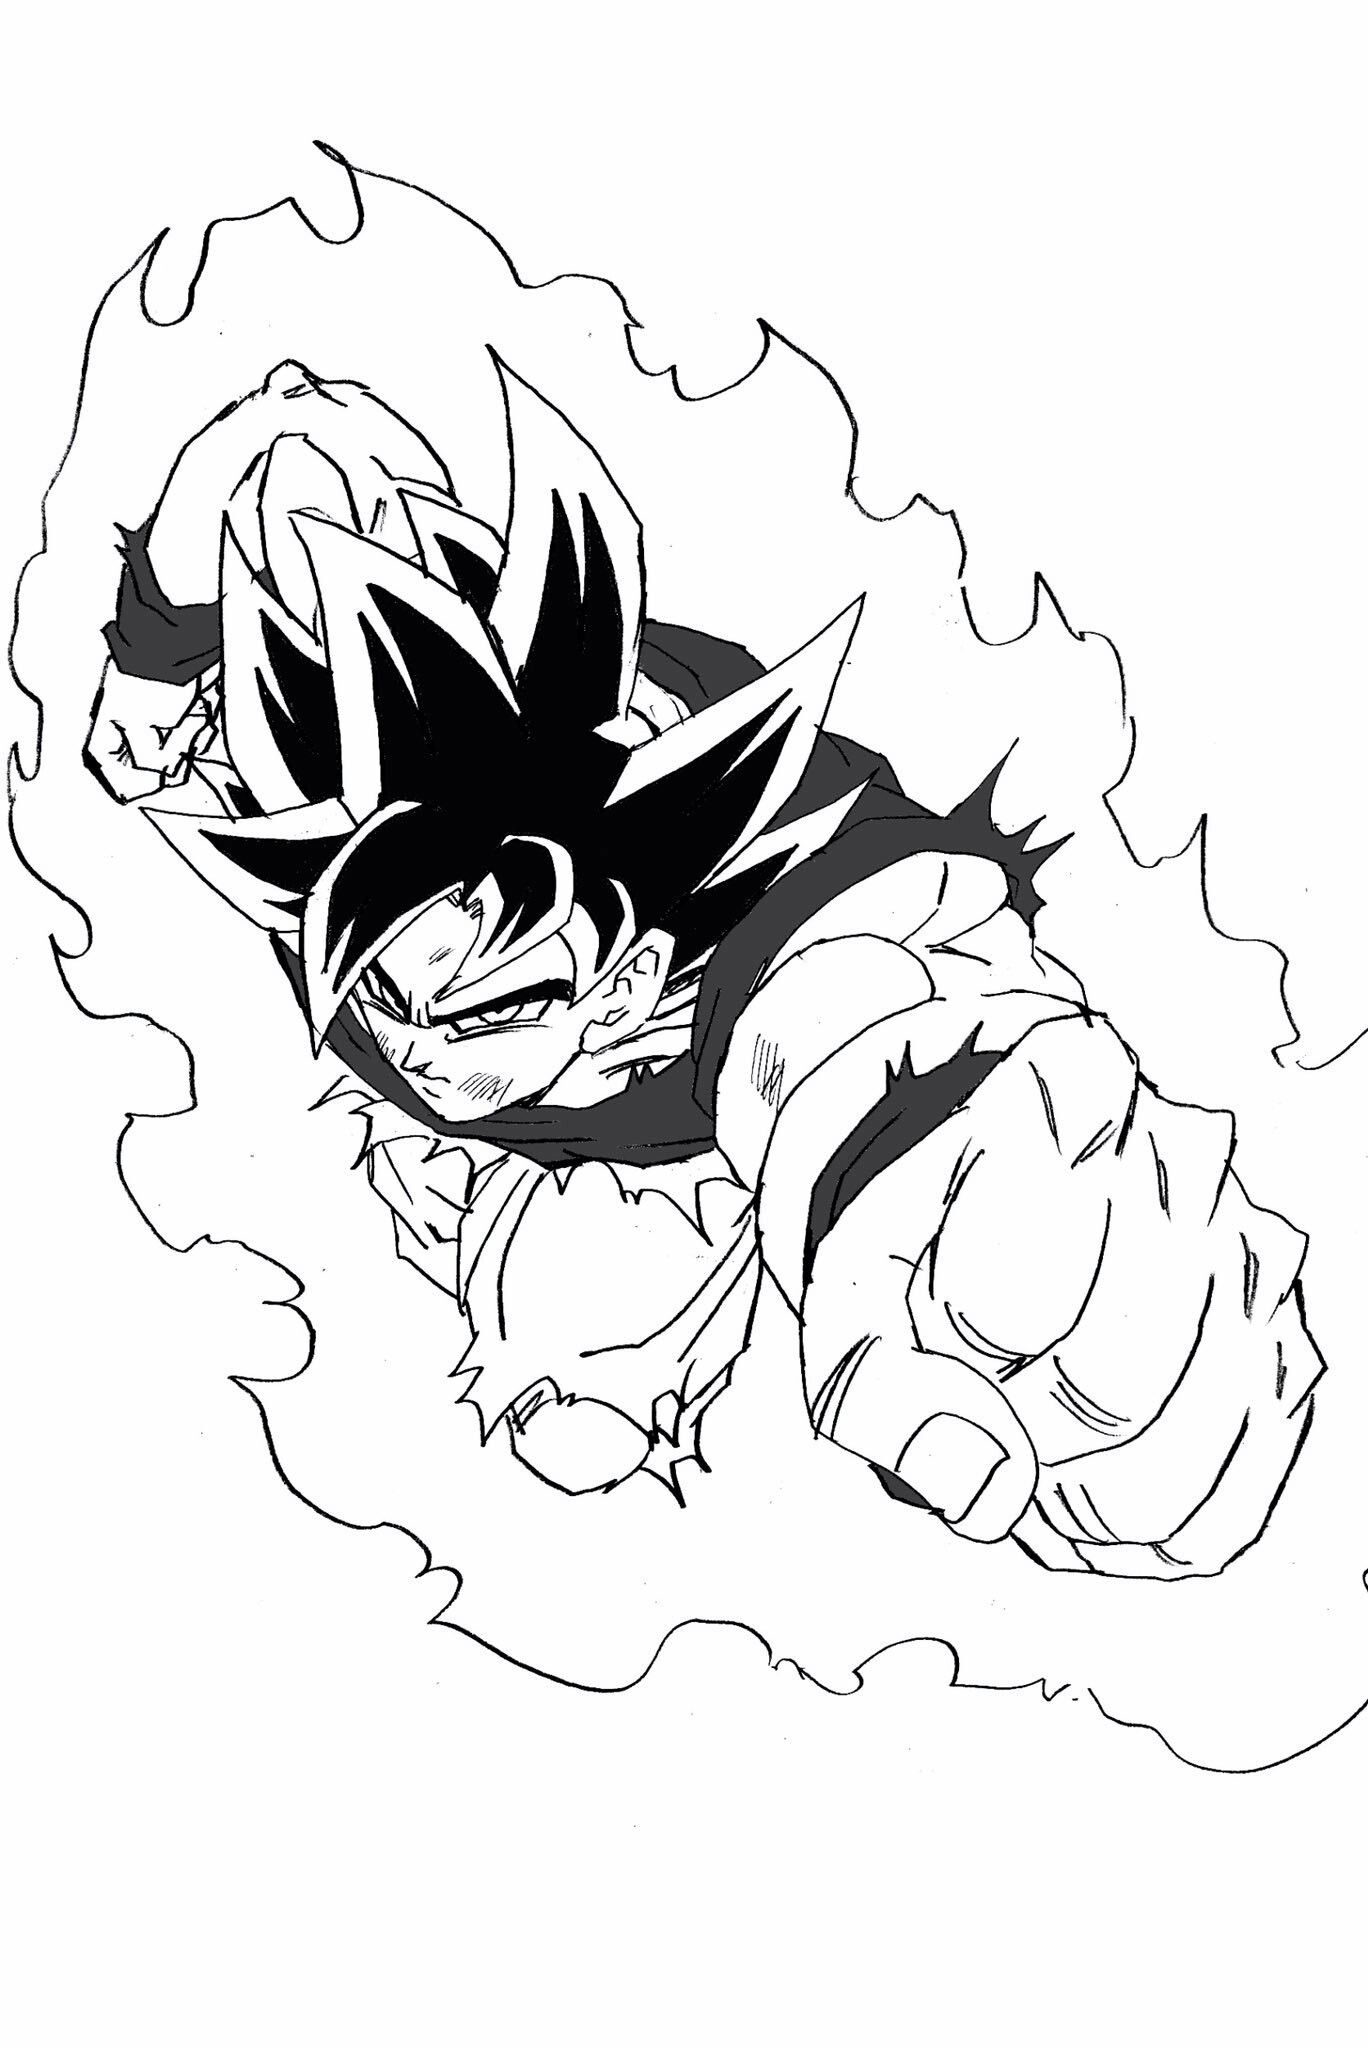 UI Goku sketch | Dragonball Series | Pinterest | Goku, Dragon ball ...